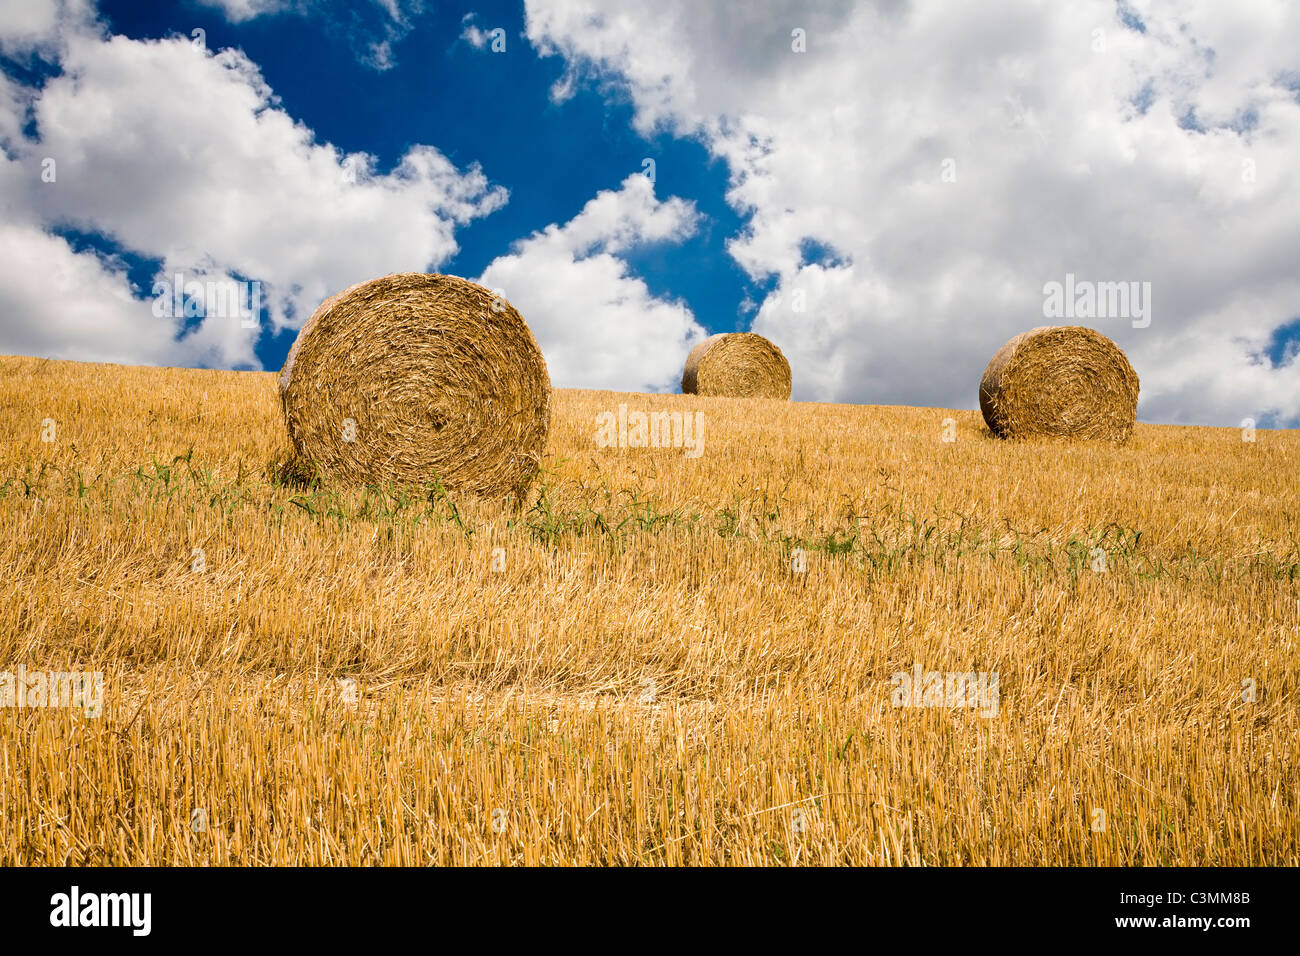 bale on the field and the sky - Stock Image